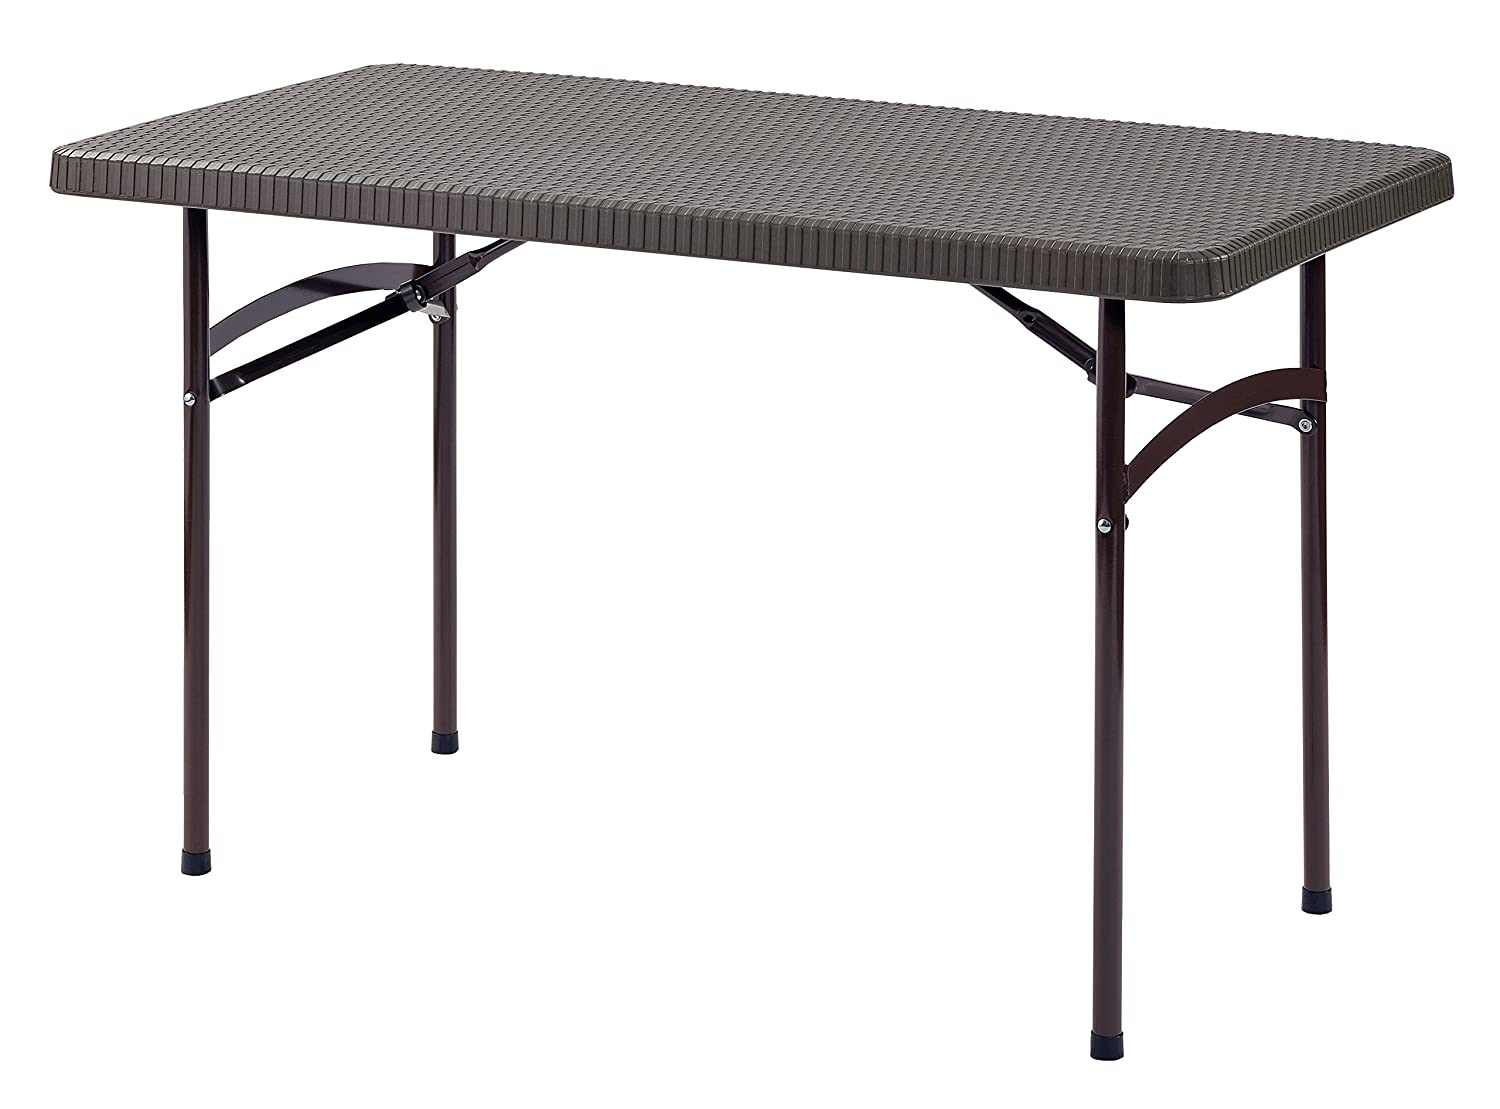 Sandusky Lee PT4824-BR 2 . L x 4 . W Plastic Folding Table in Brown, 29 Height, 48 Width, 24 Length